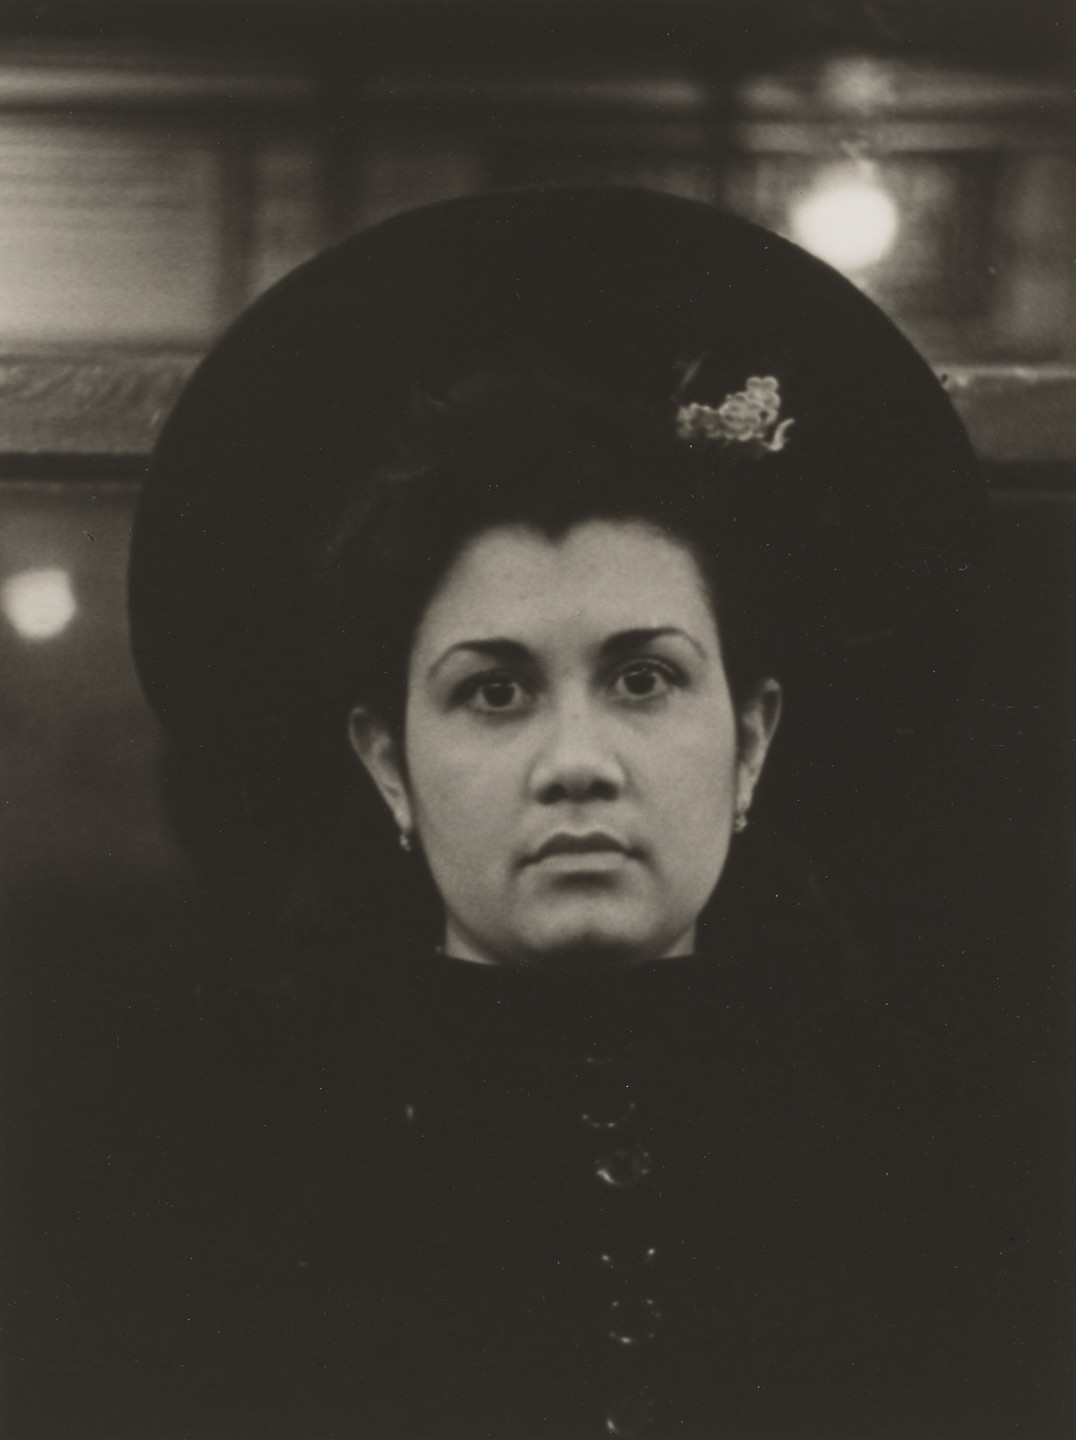 Walker Evans. Subway Portrait. 1938-41